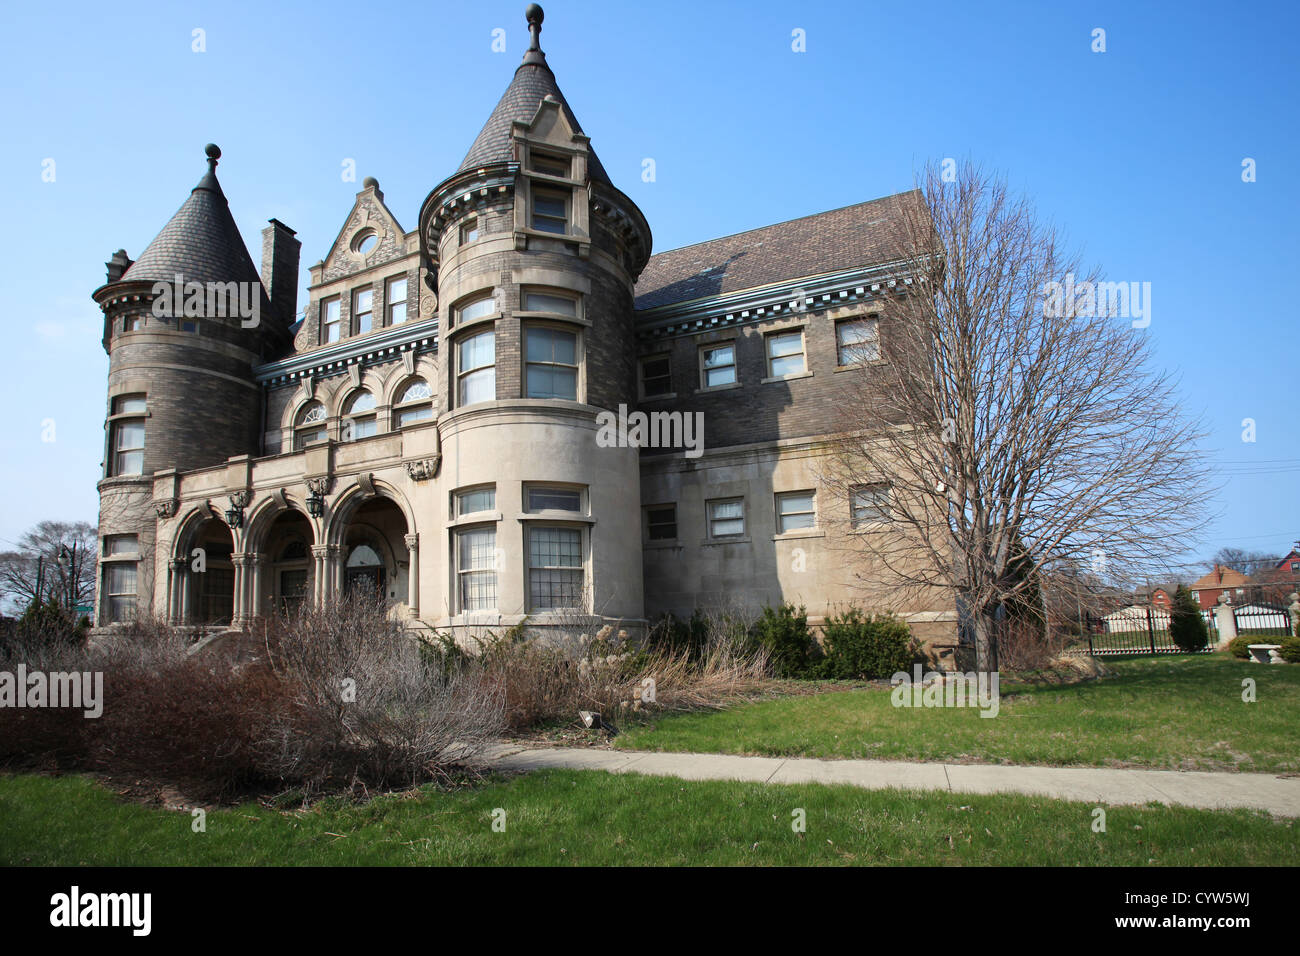 Abandoned building in brush park detroit michigan stock for Building a house in michigan